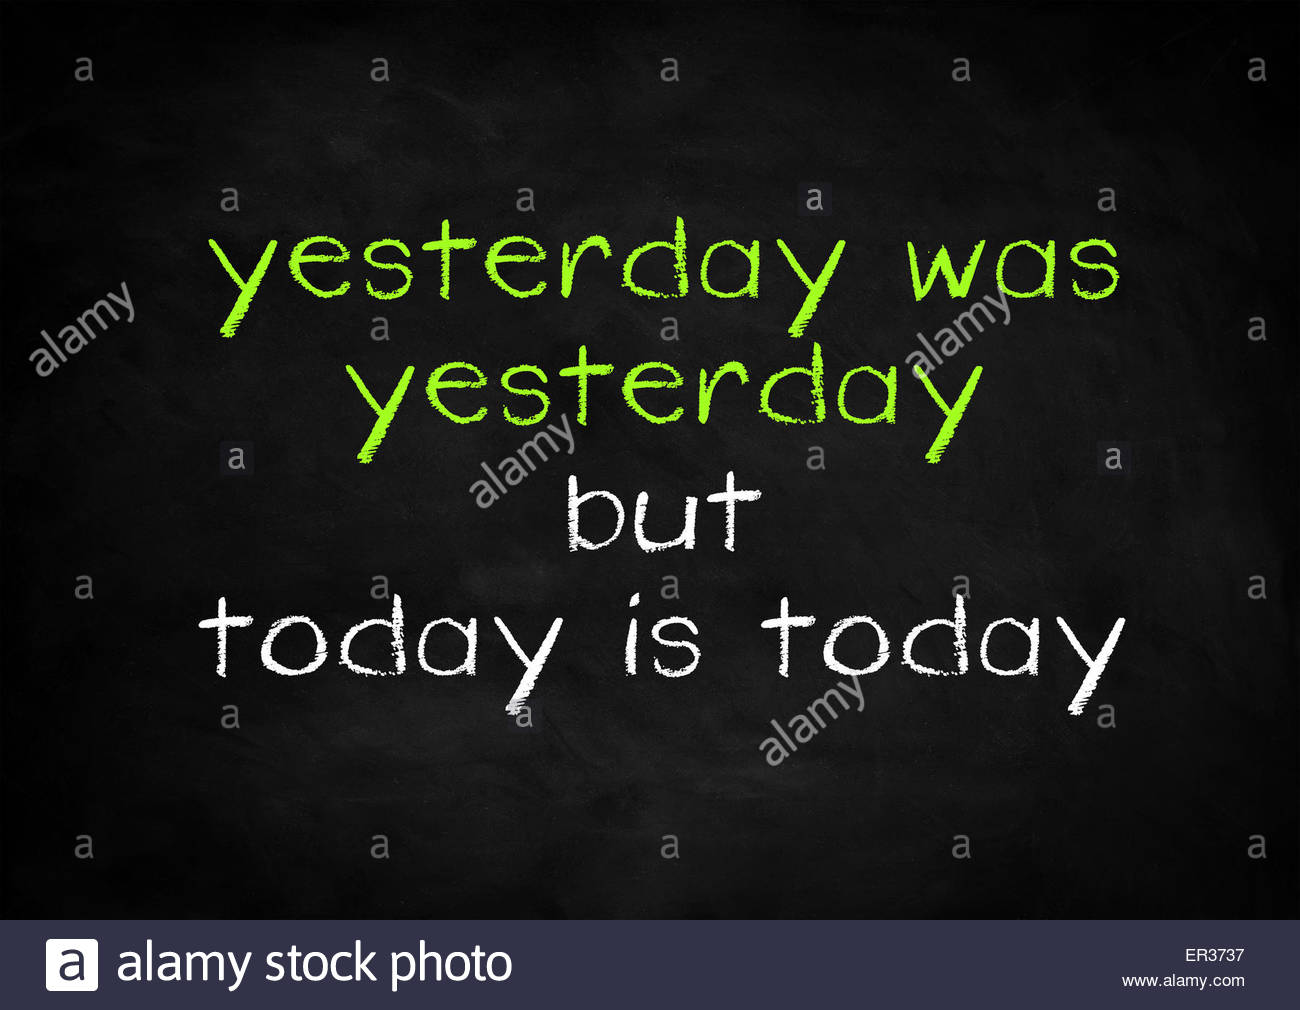 today is today - Stock Image